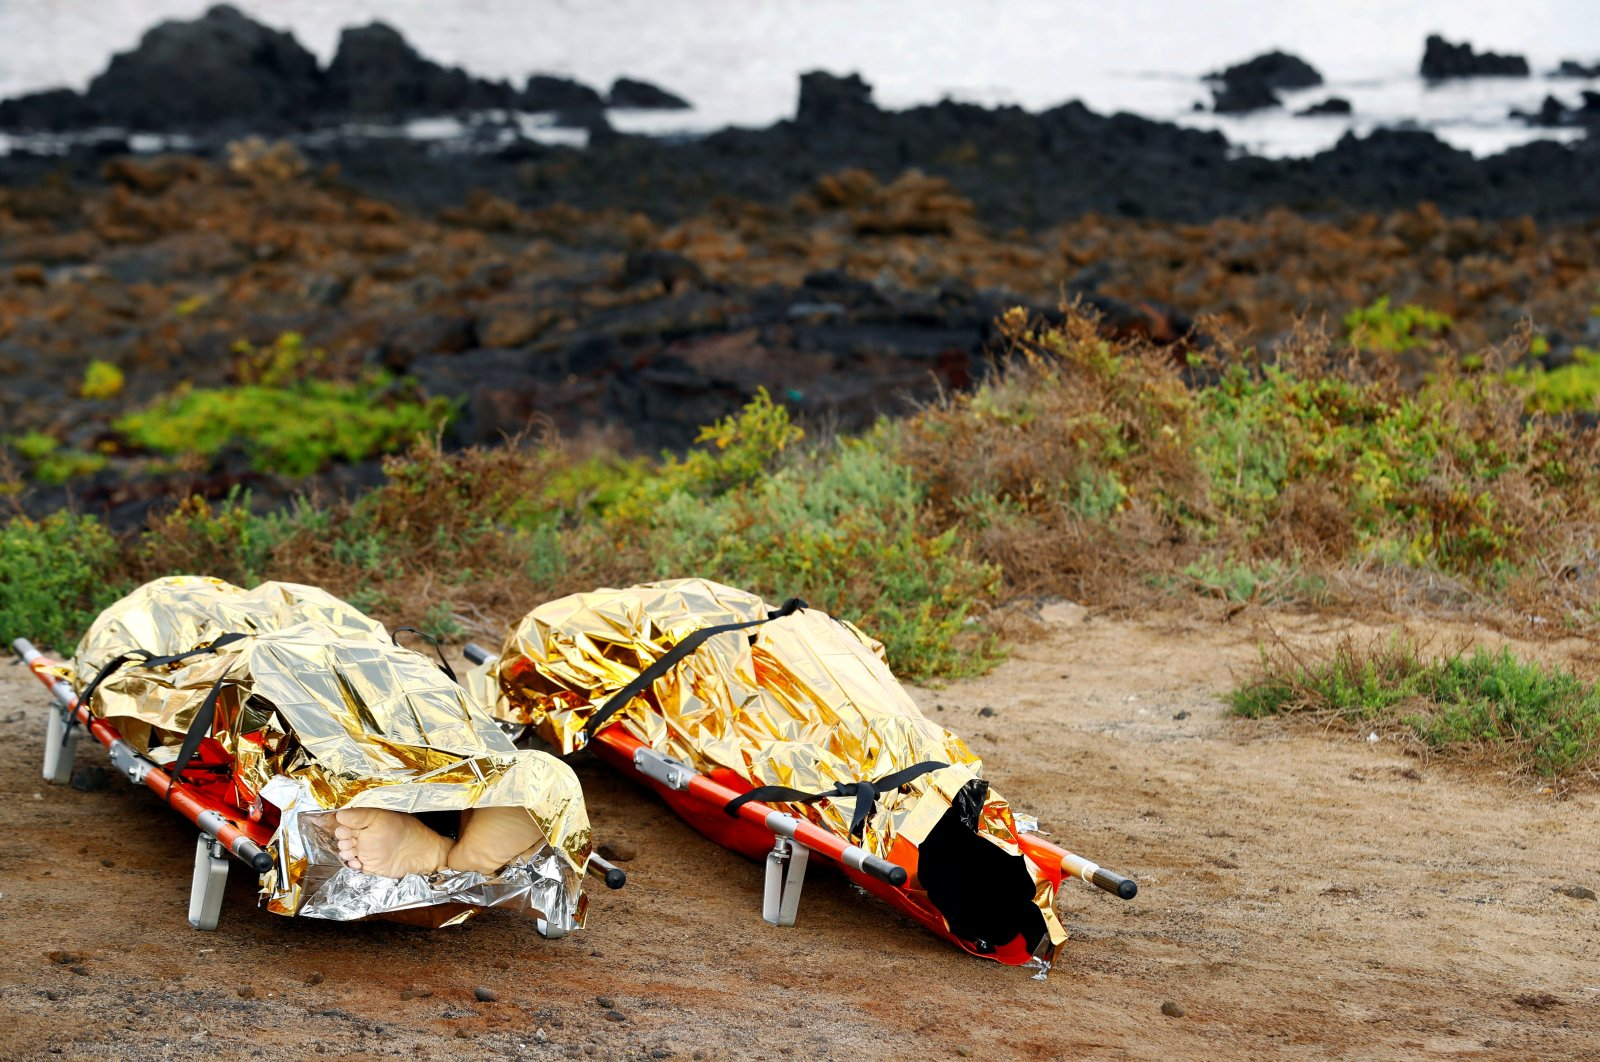 Bodies of dead people are seen on stretchers after a boat with 35 migrants from the Maghreb region capsized near the beach of Orzola, in the Canary Island of Lanzarote, Spain, Nov. 25, 2020. (Reuters File Photo)